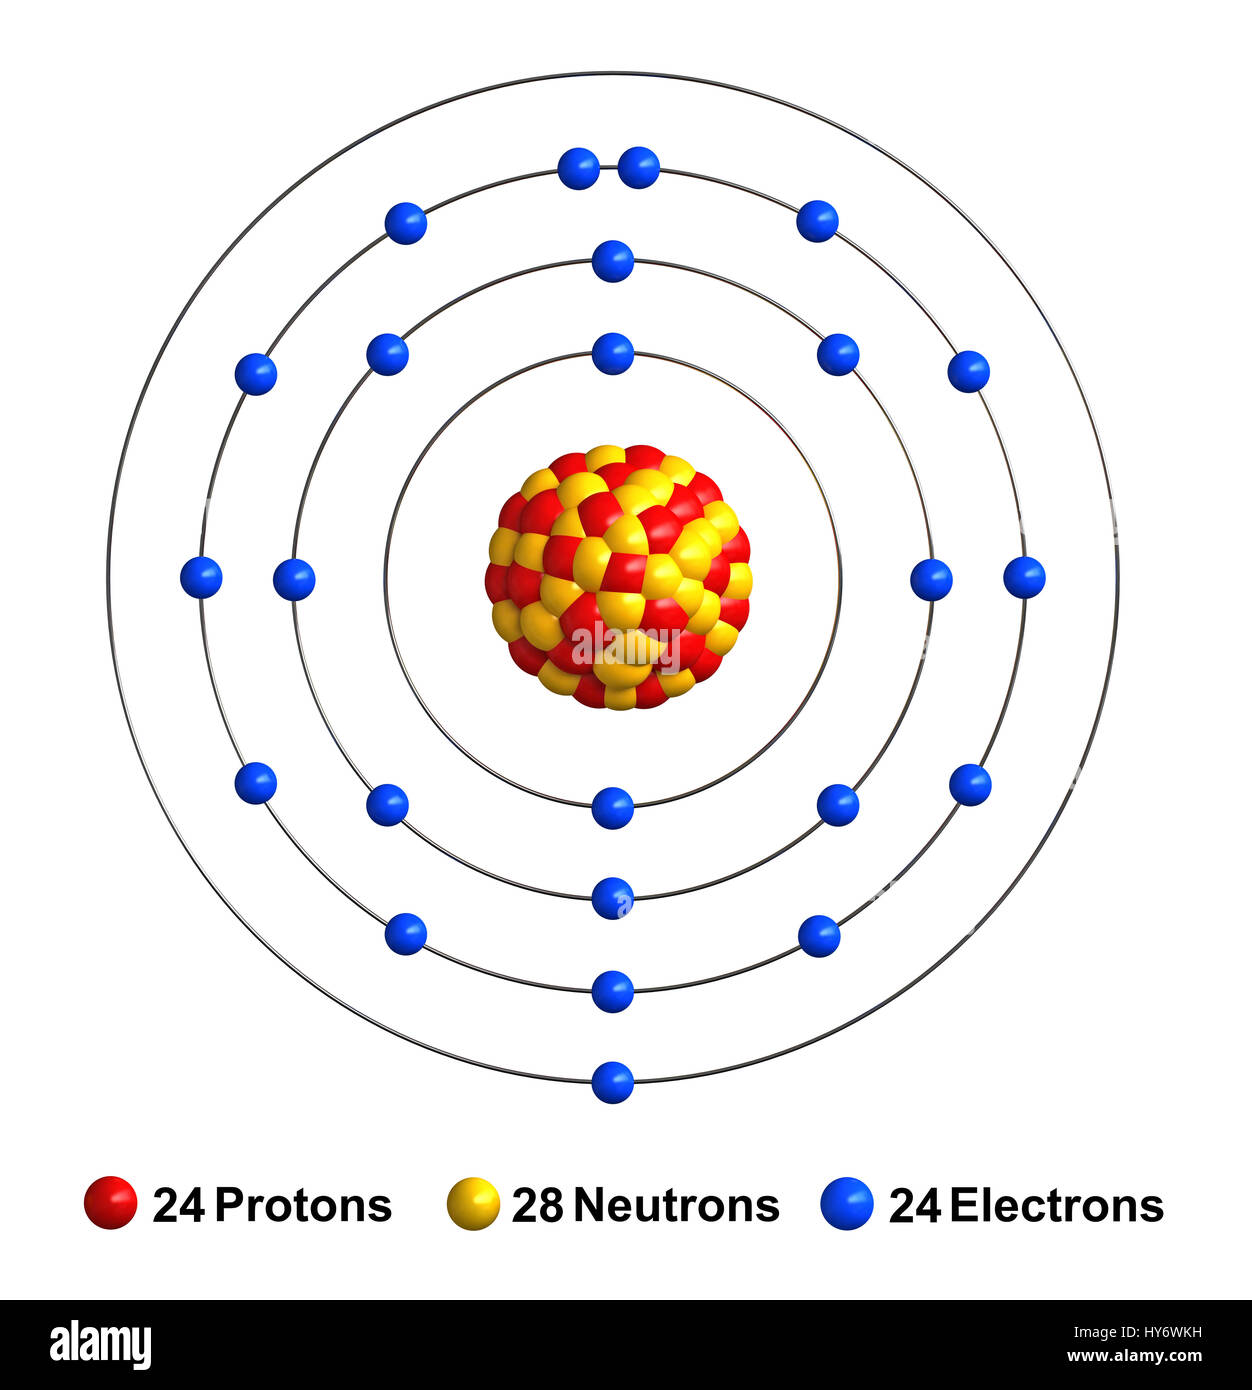 chromium atomic structure stock photos chromium atomic structure rh alamy com Iron Atom Diagram Atom Diagram with Labels